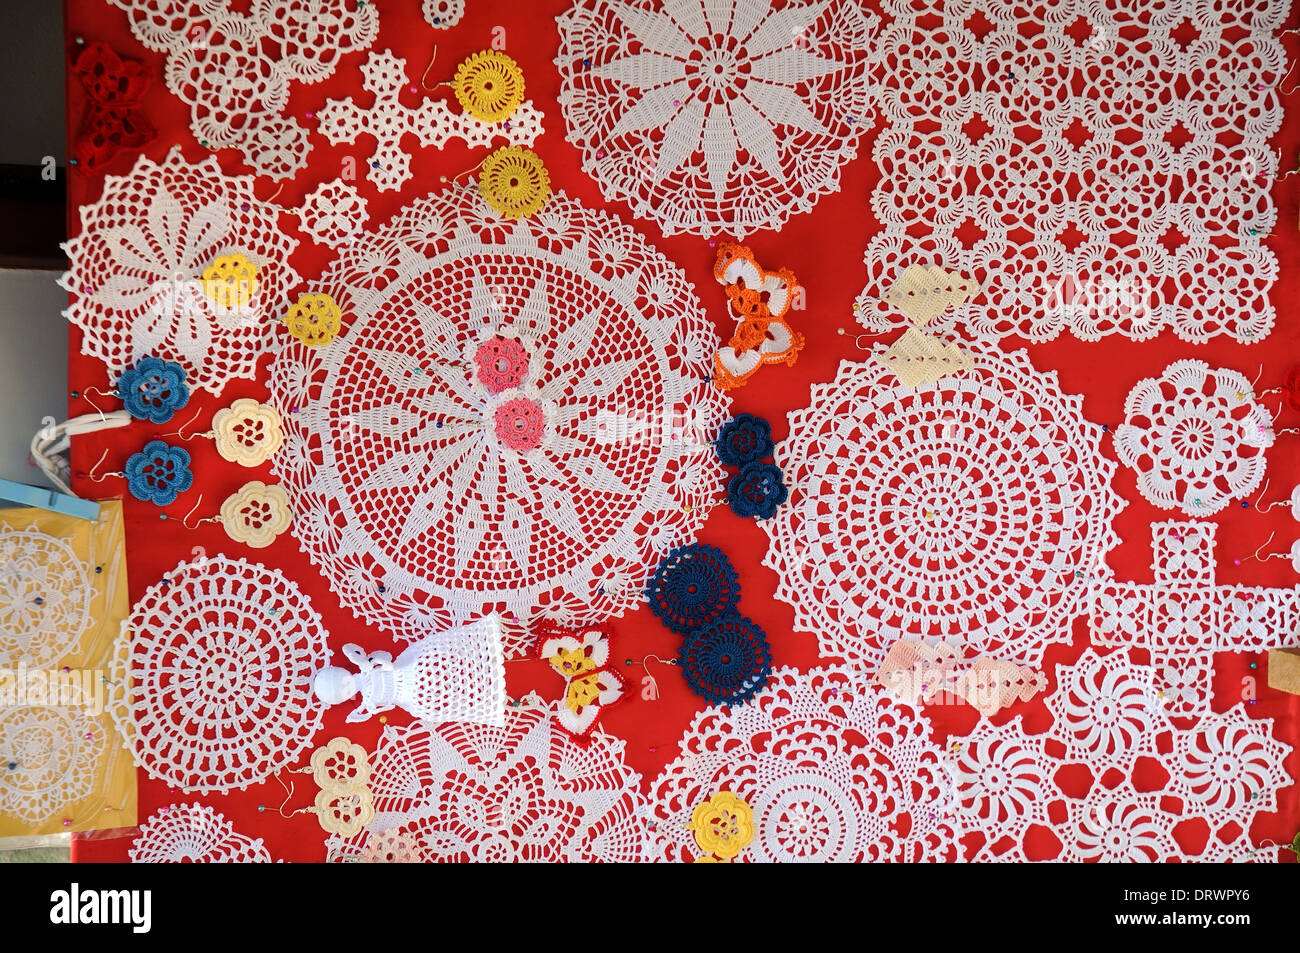 Lace art work in Pag island, Croatia - Stock Image